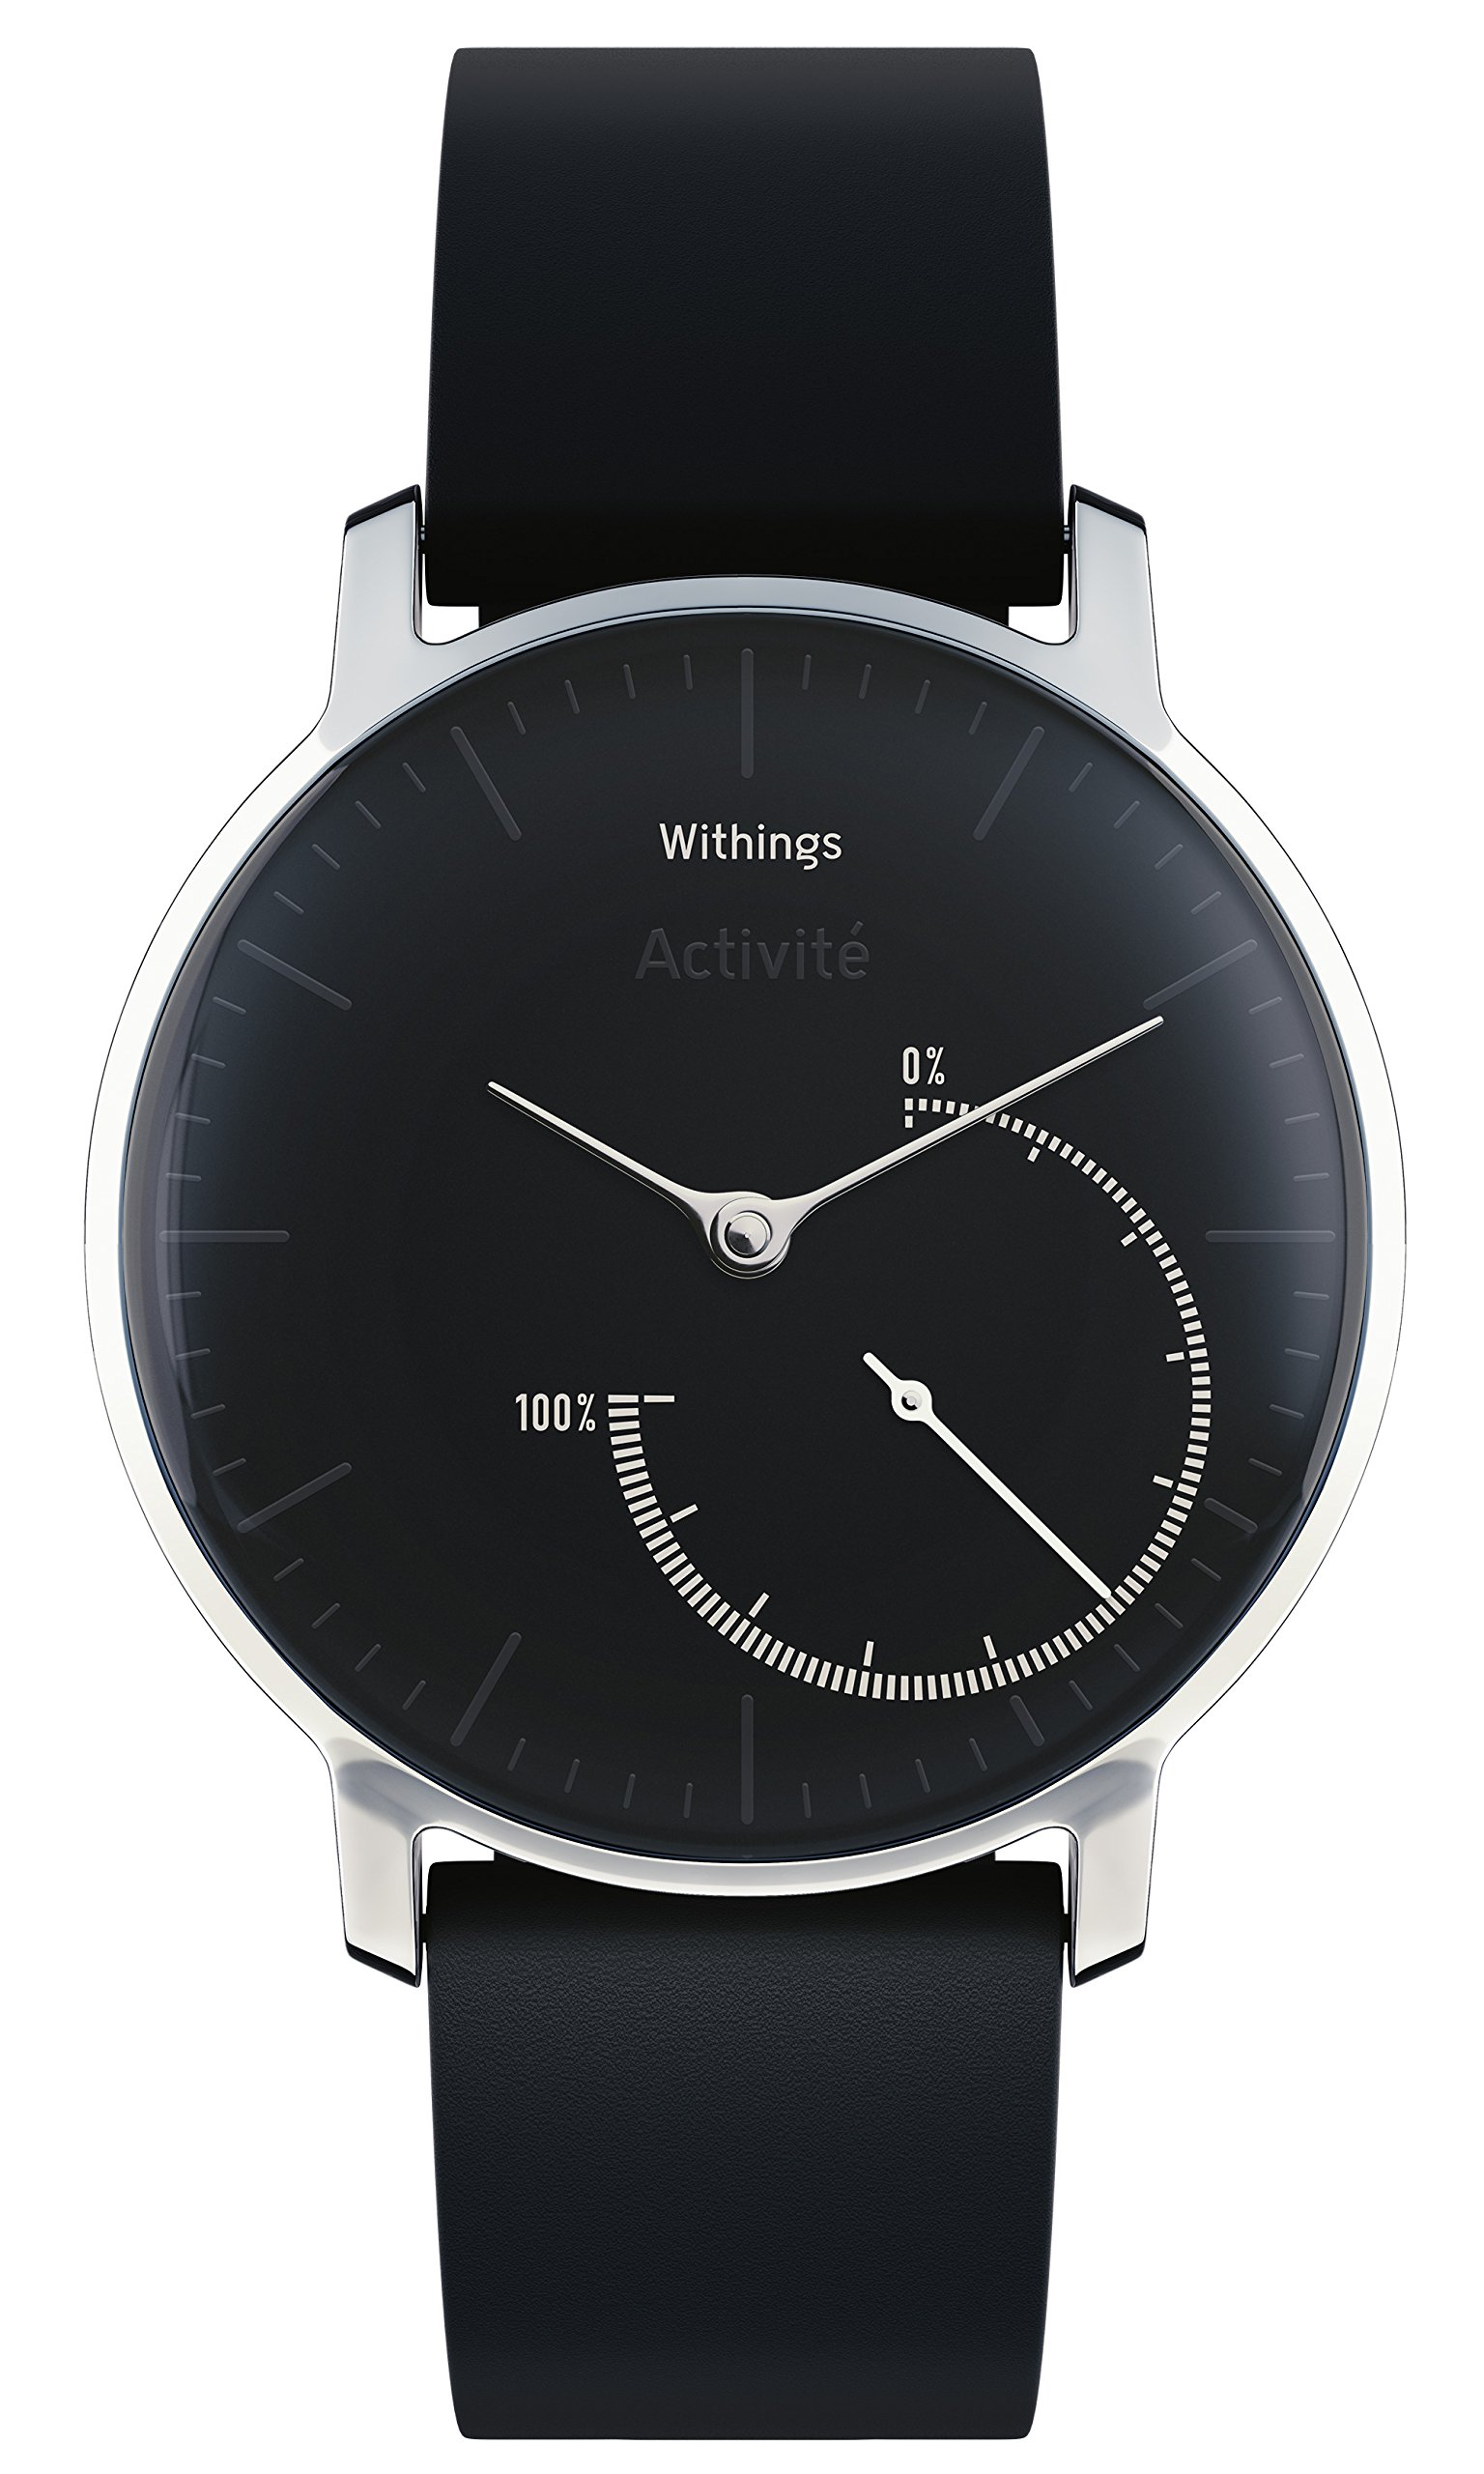 Withings Actività Steel - Activity and Sleep Tracking Watch by Withings (Image #2)